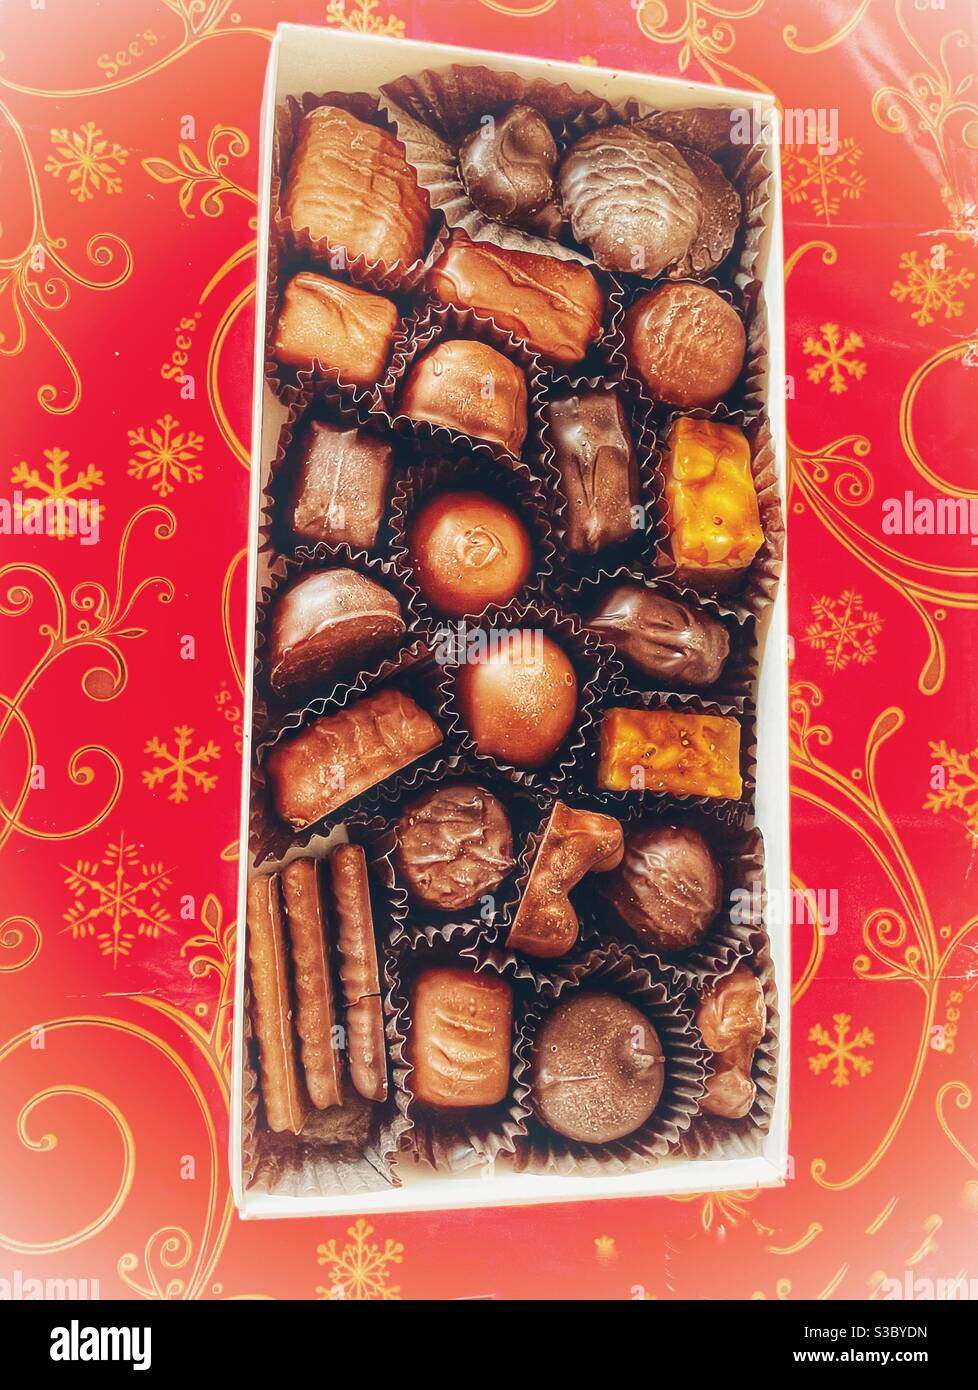 Melt In Your Mouth Assortment Of See S Classic Chocolate Candies Stock Photo Alamy